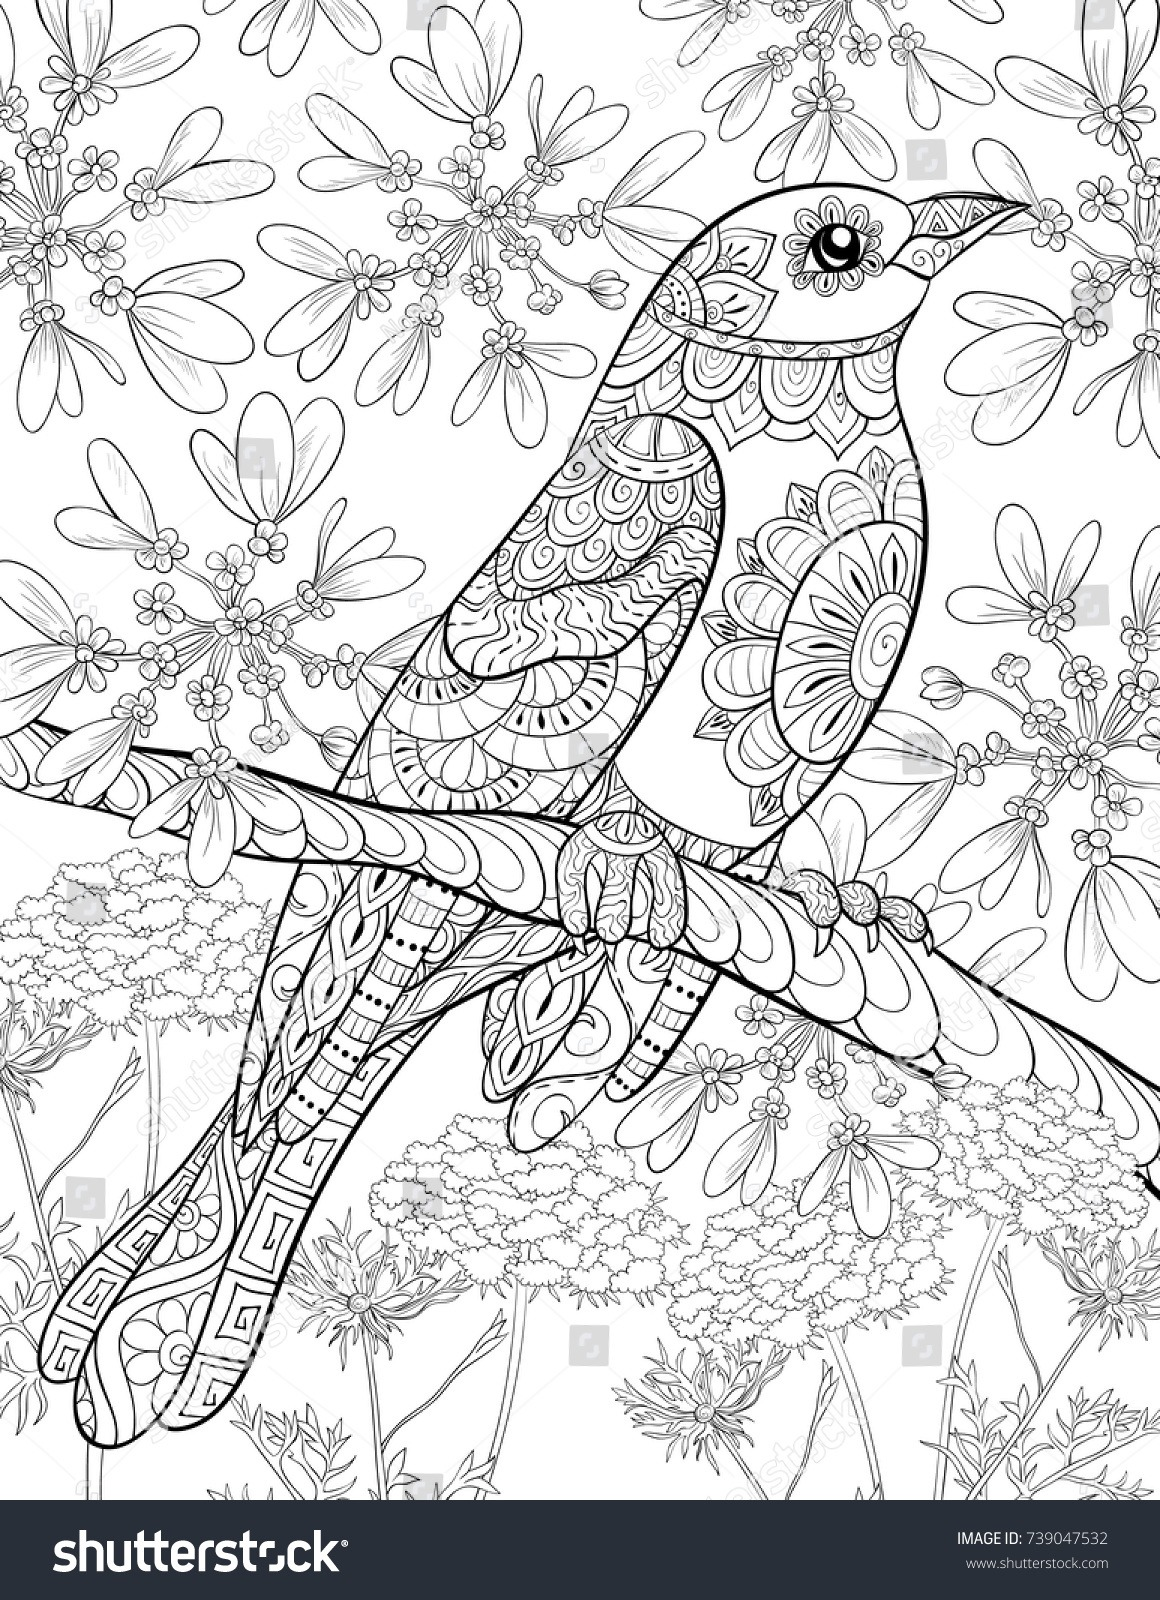 Adult Coloring Pagebook Cute Bird On Stock Vector (royalty Free